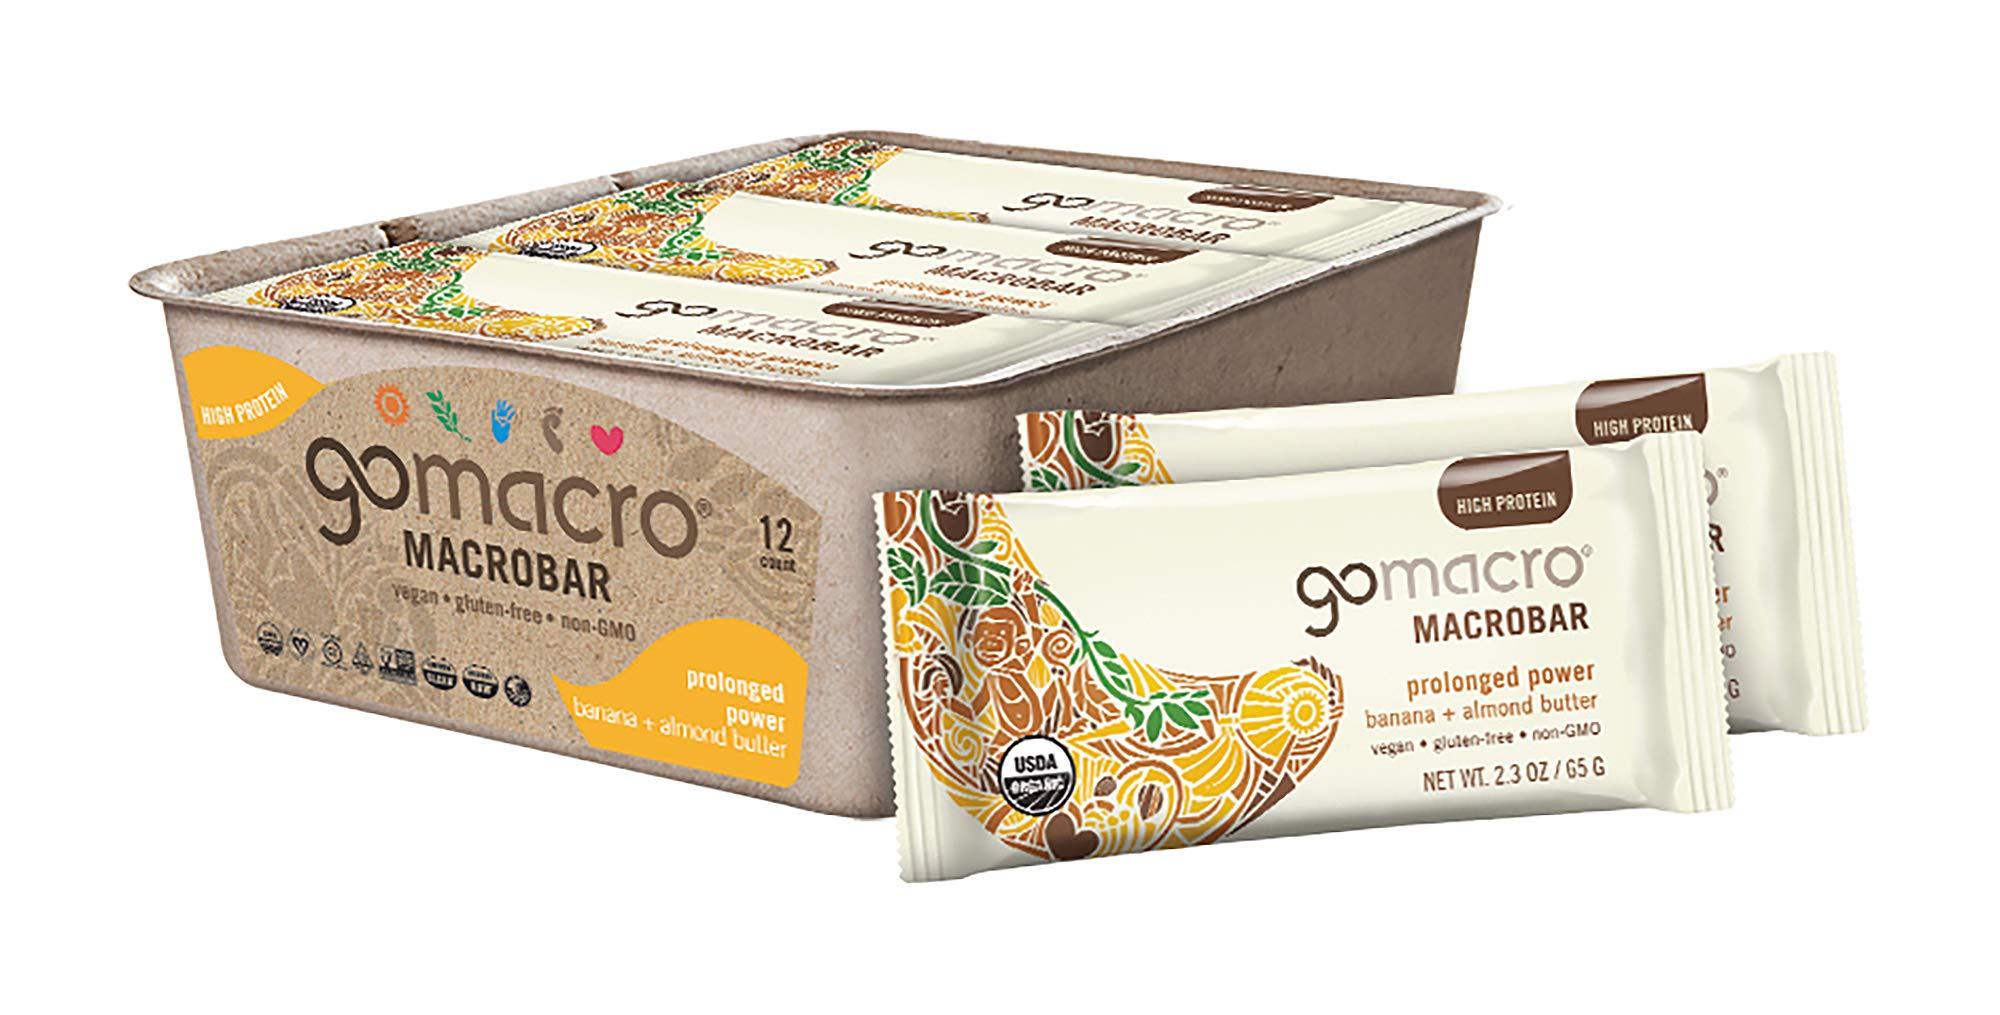 GoMacro MacroBar Organic Vegan Protein Bars Banana + Almond Butter 2.3 Ounce Bars (Pack of 12) by GoMacro